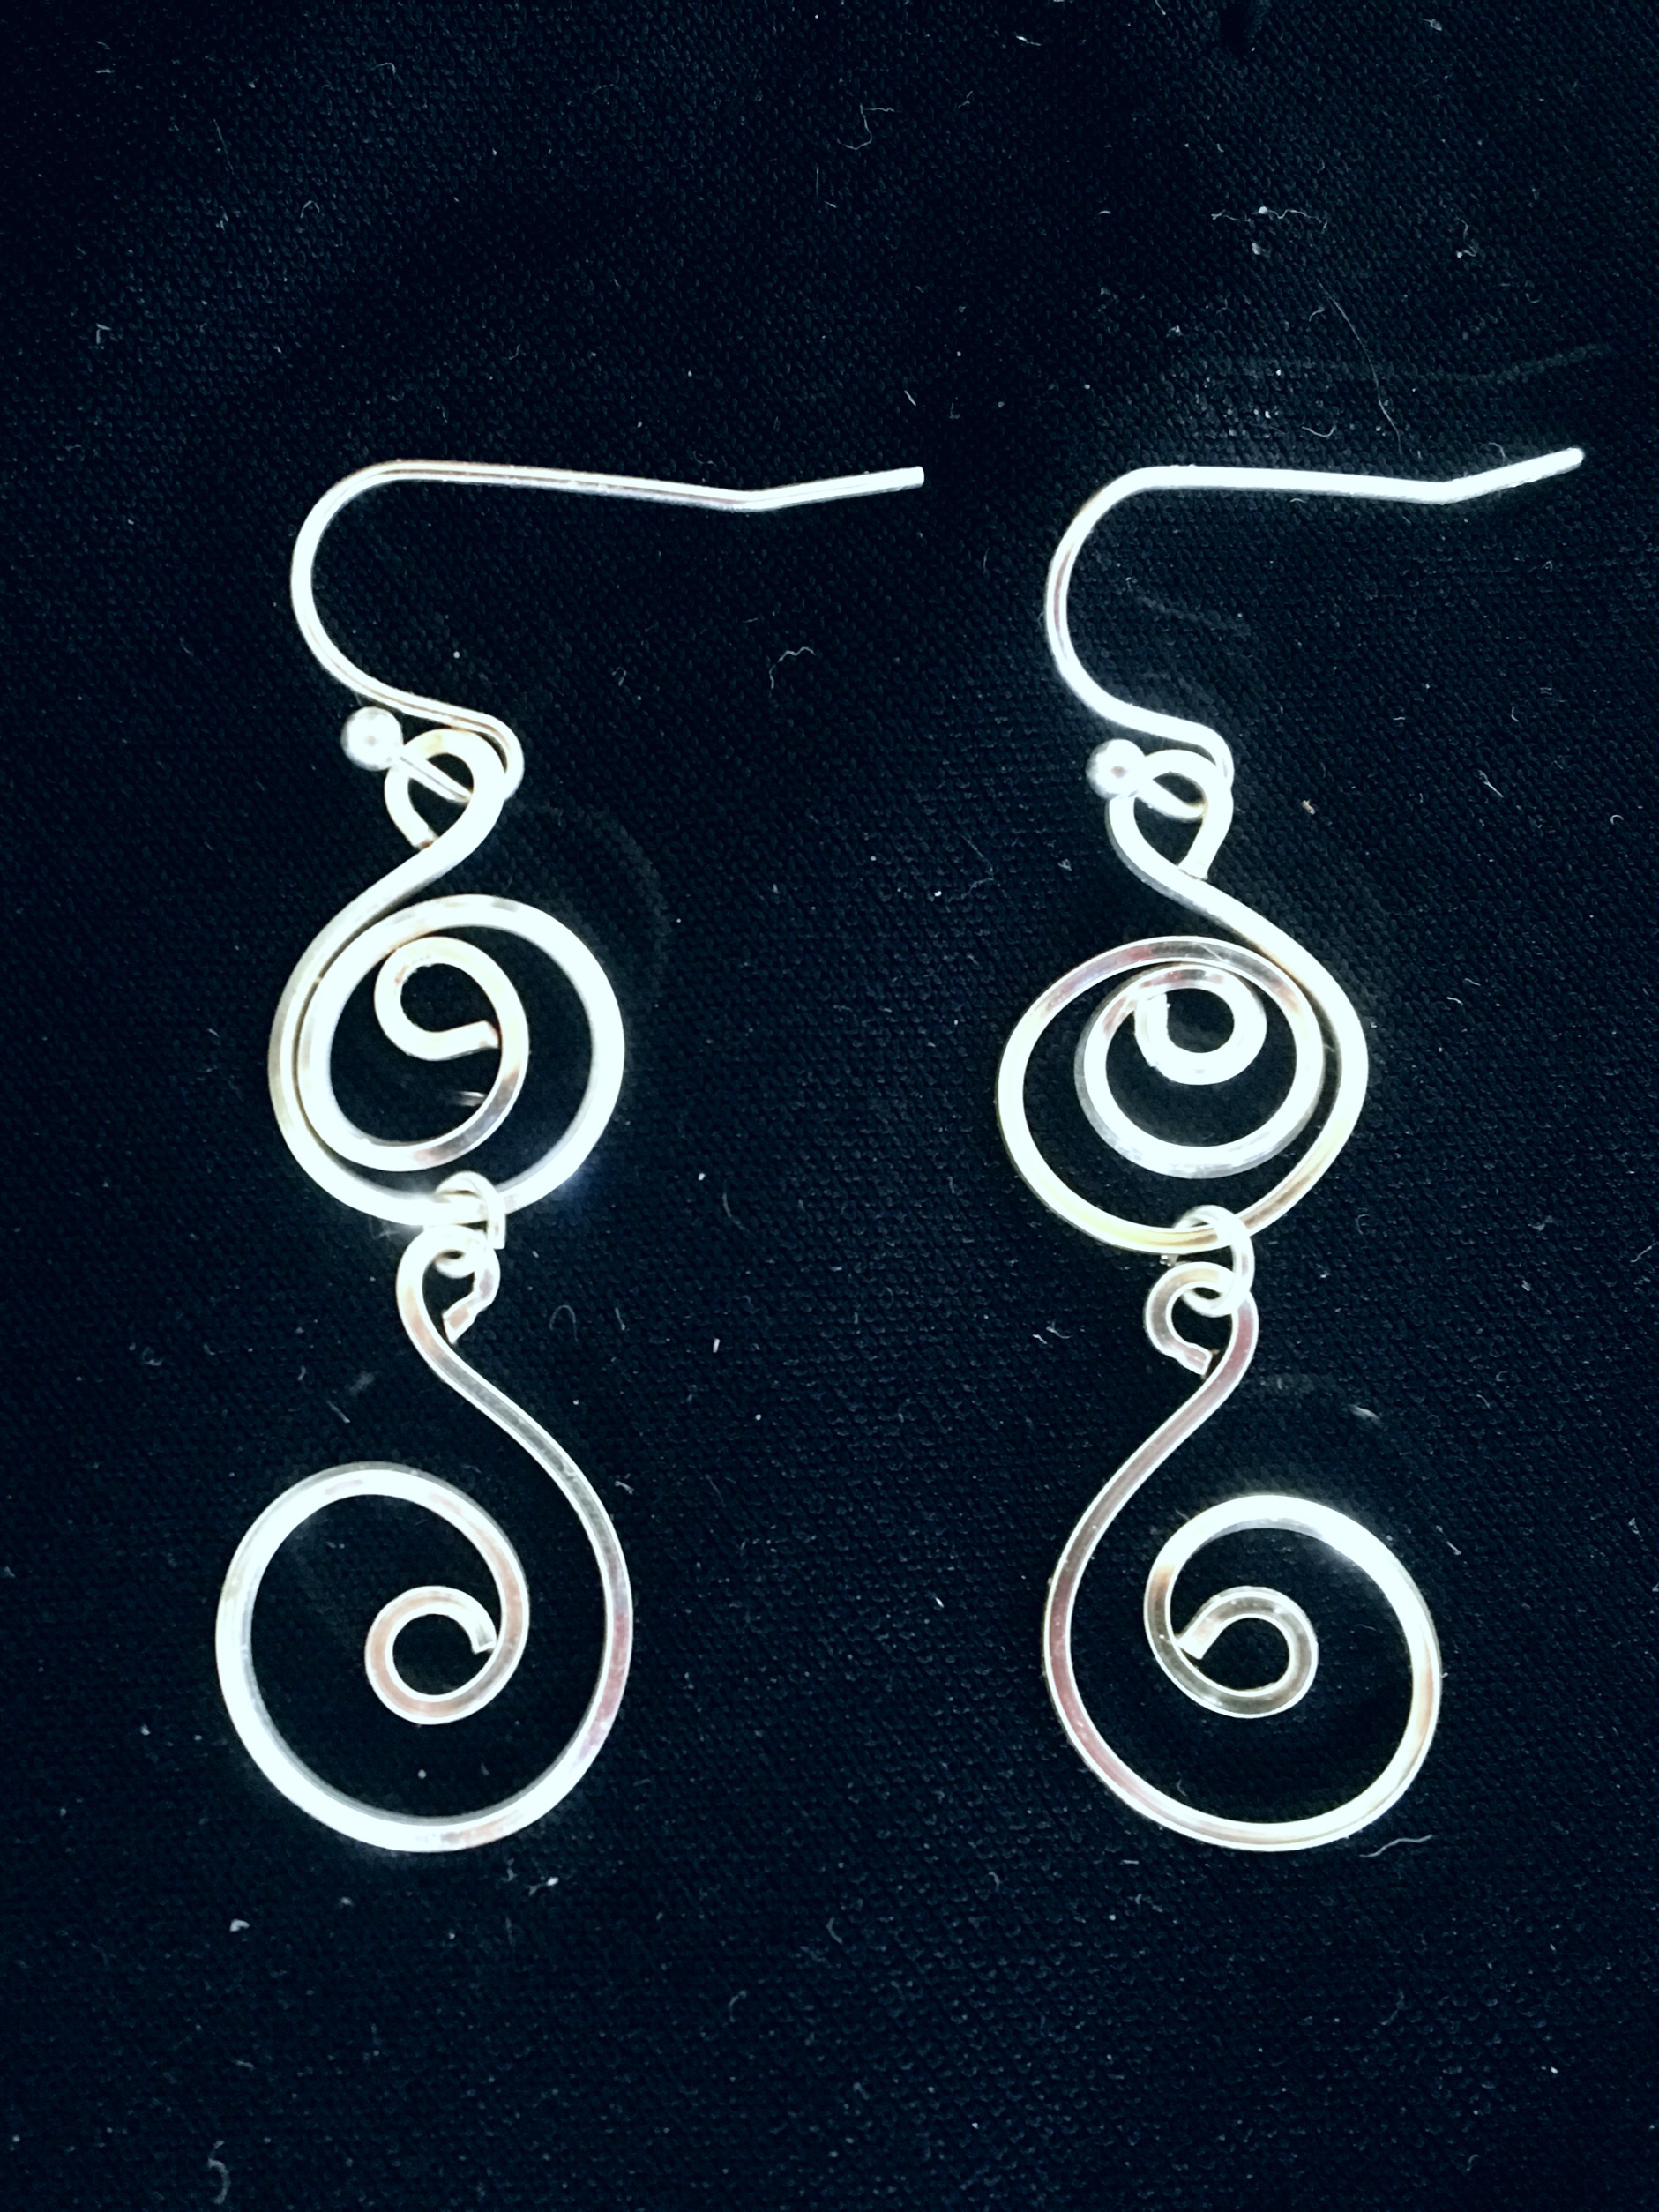 Candid Claire Earrings - Swirl